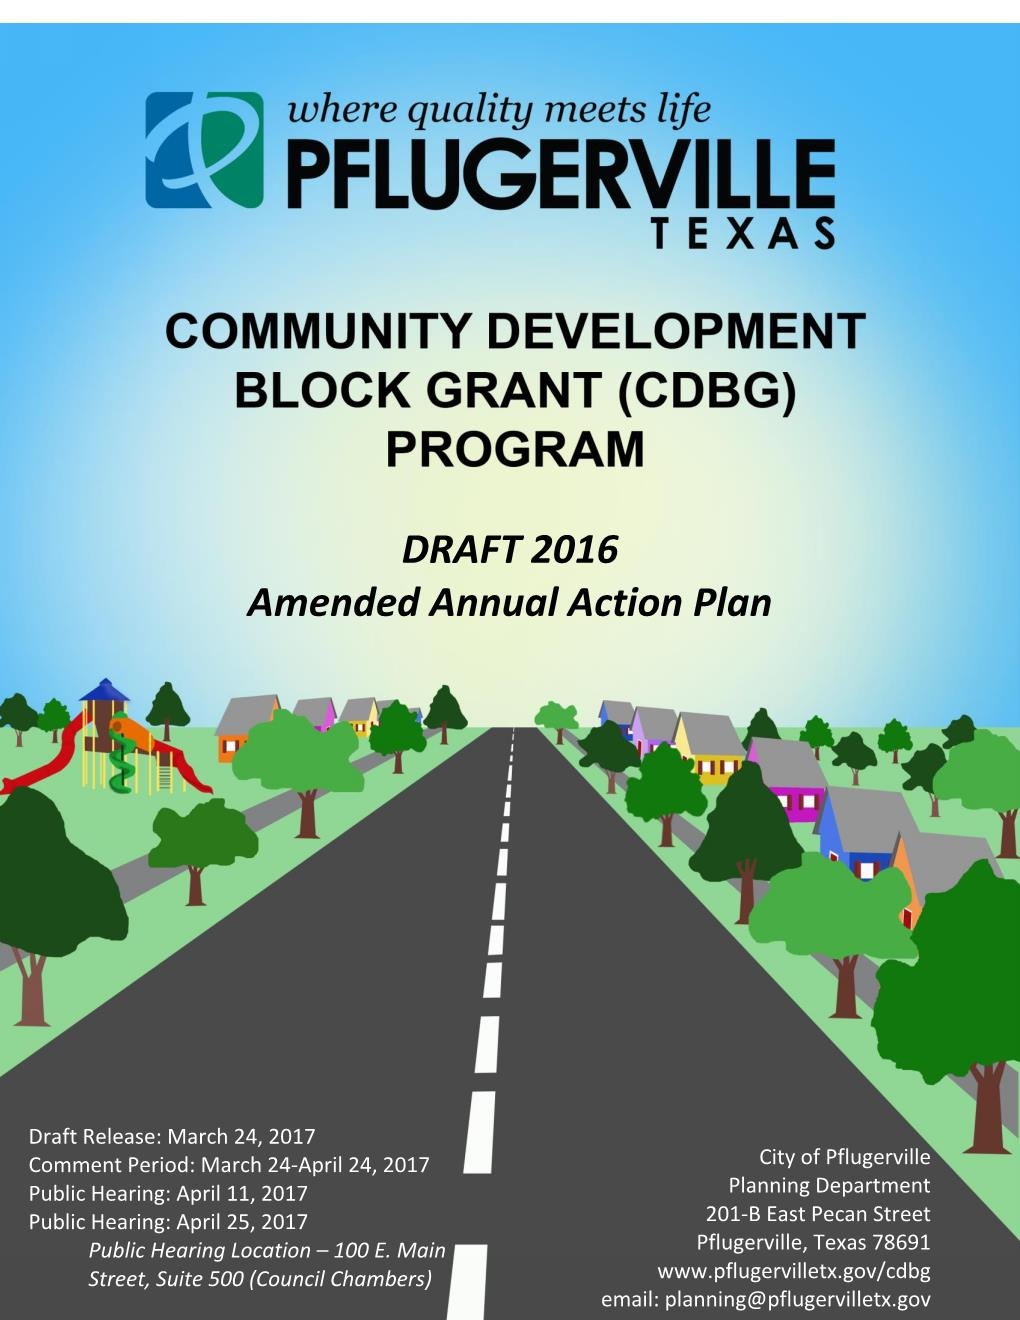 2016 Amended Action Plan - Draft for Public Review cover sheet